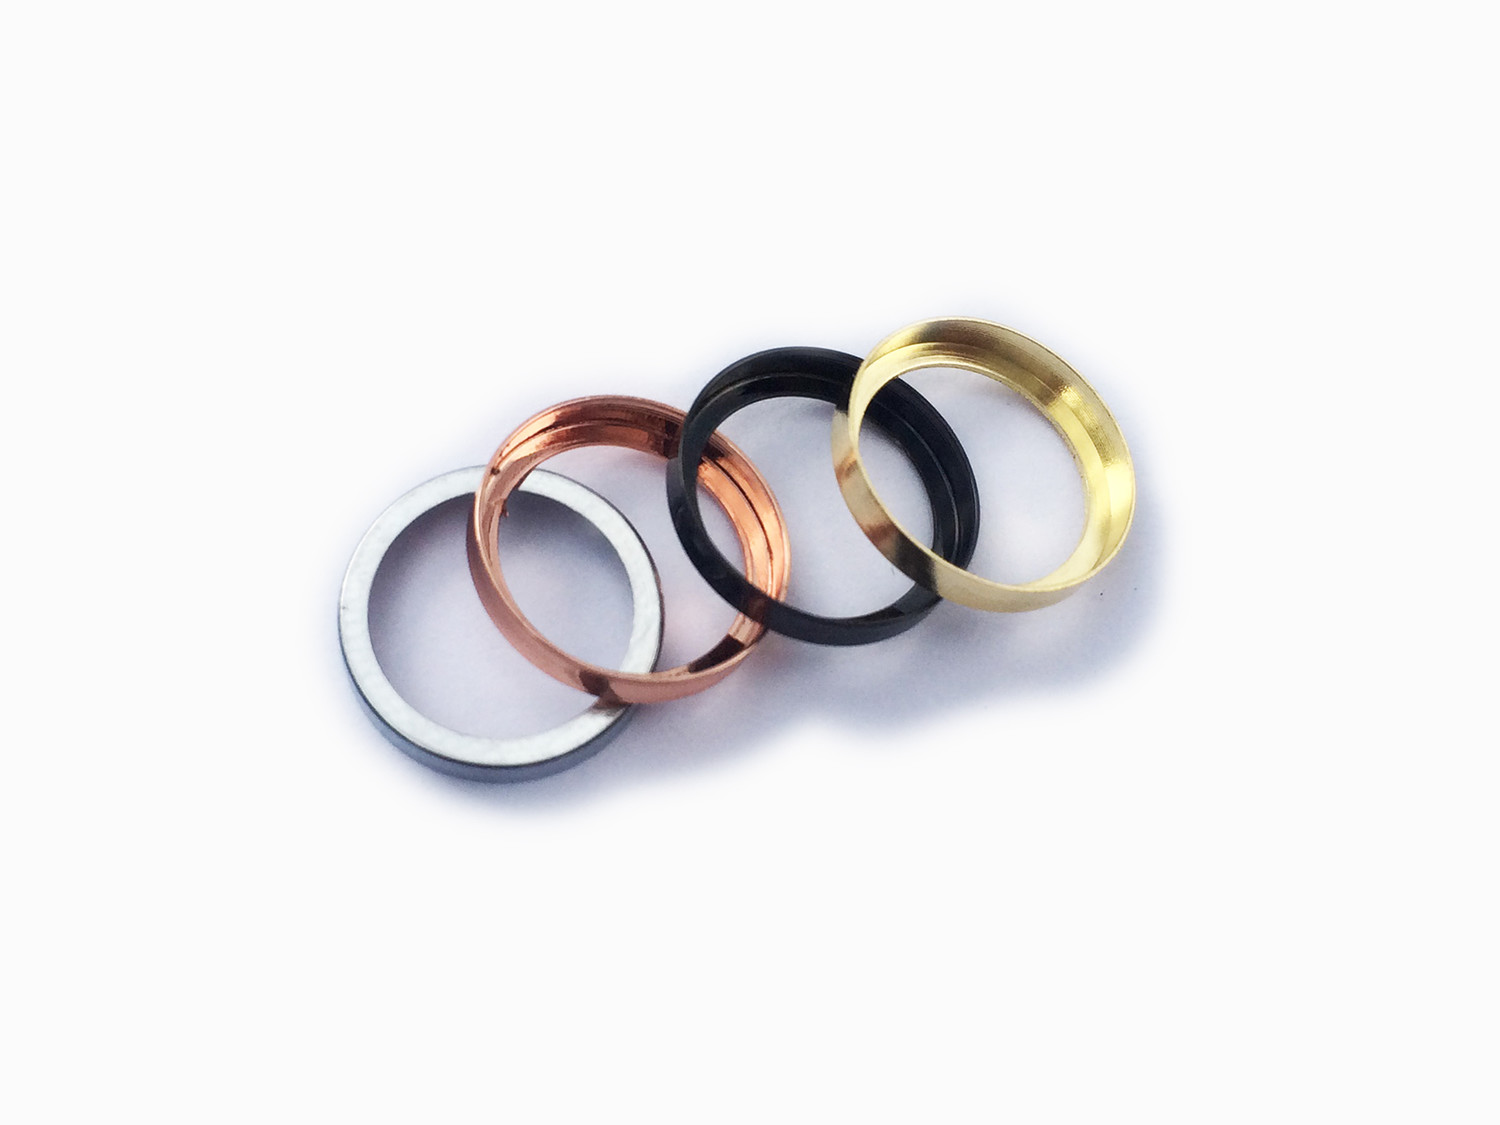 Zebra Airfit Metal Rings